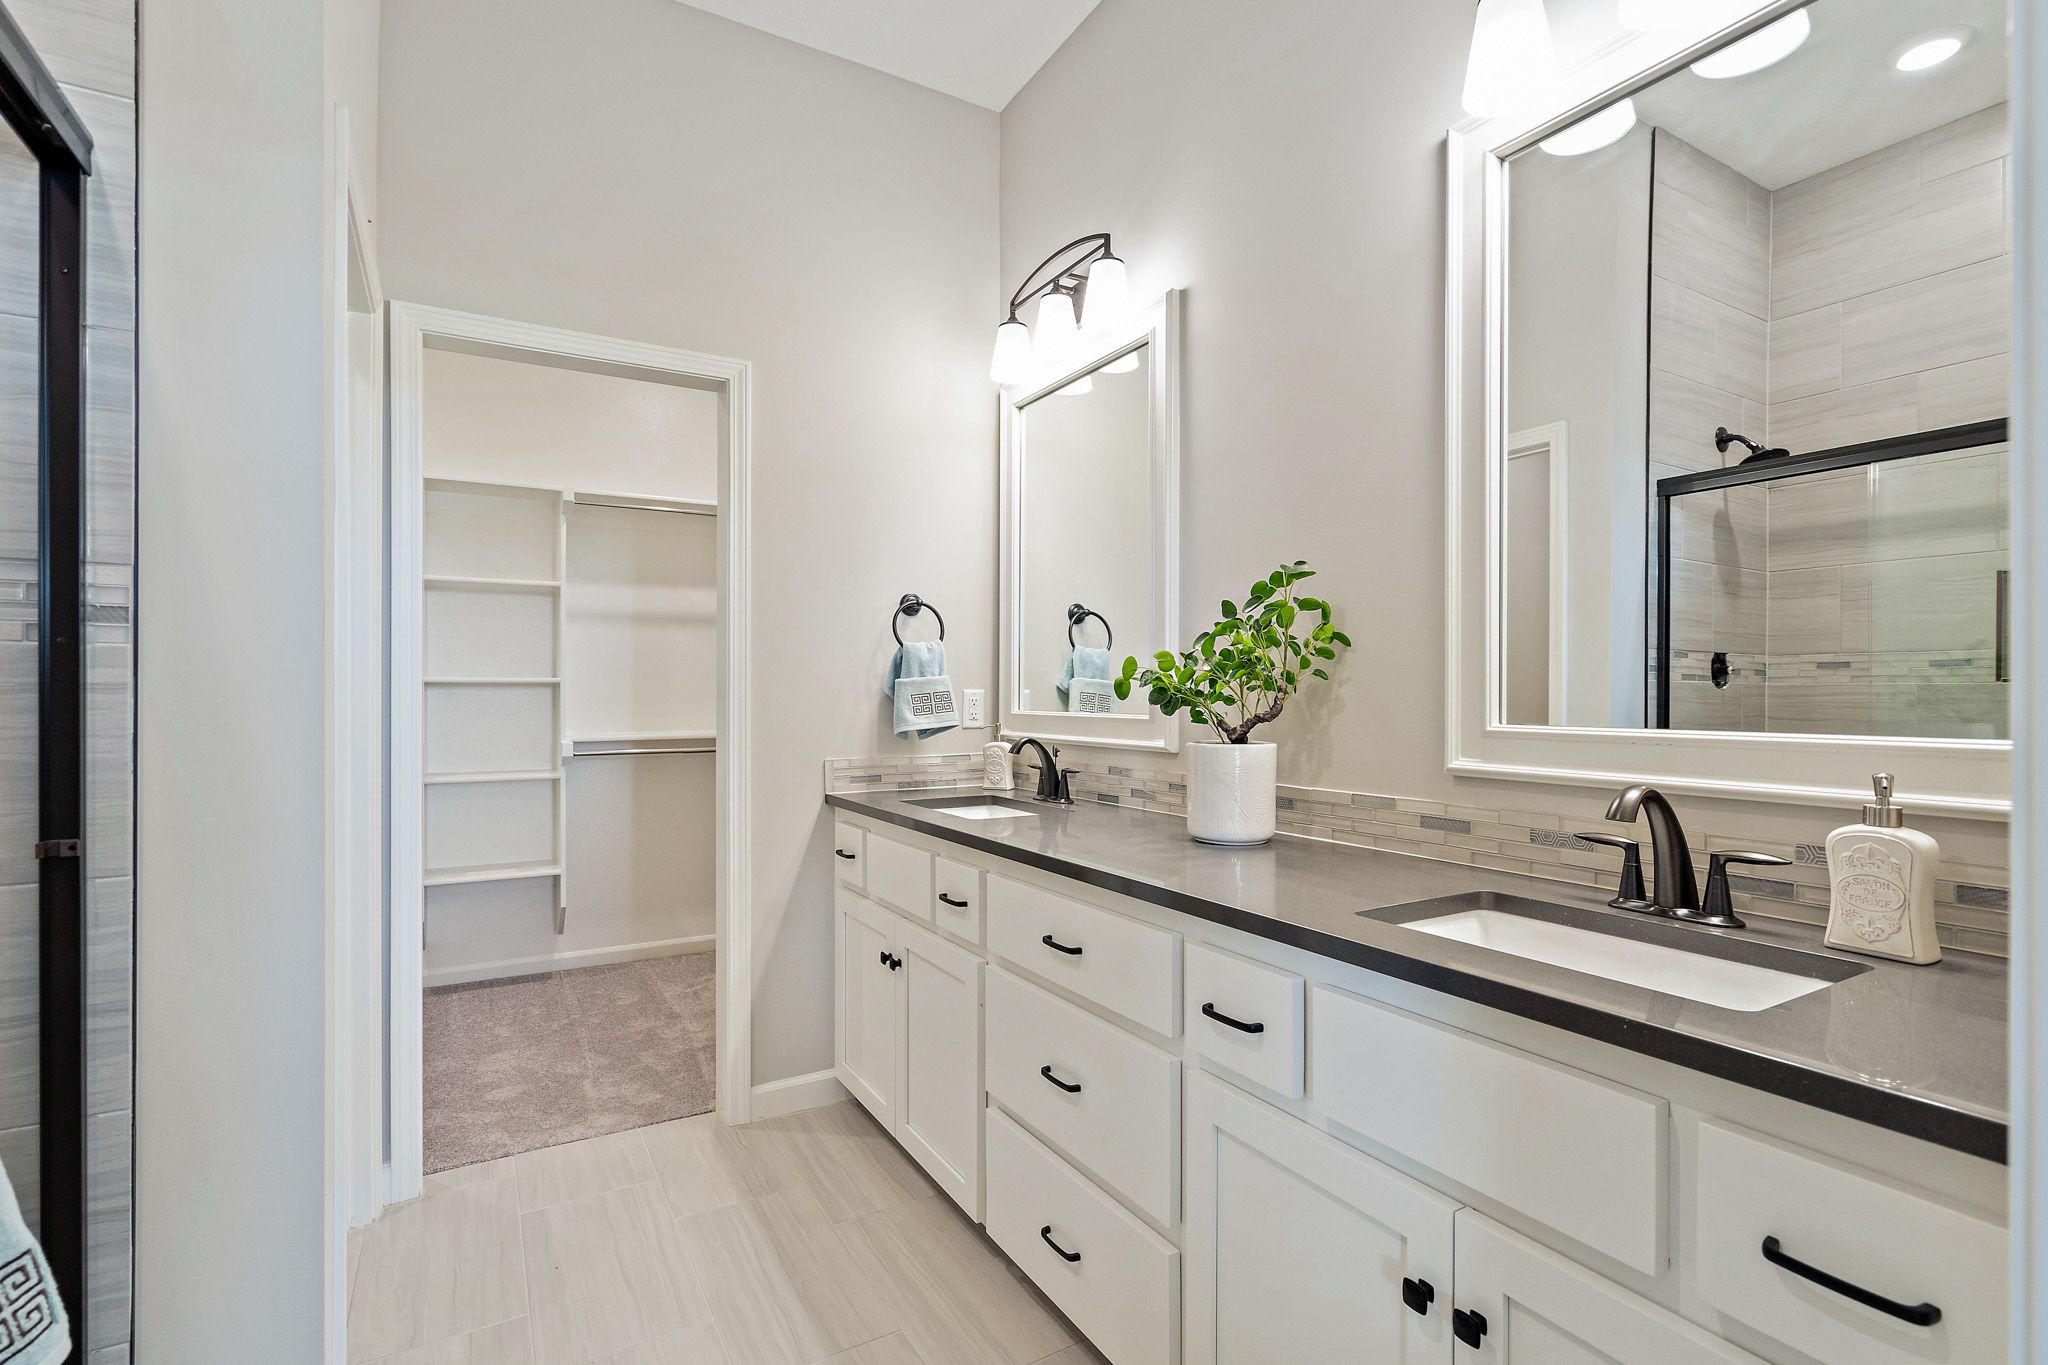 Bathroom featured in the Langston - Care Free By Summit Homes in Kansas City, MO